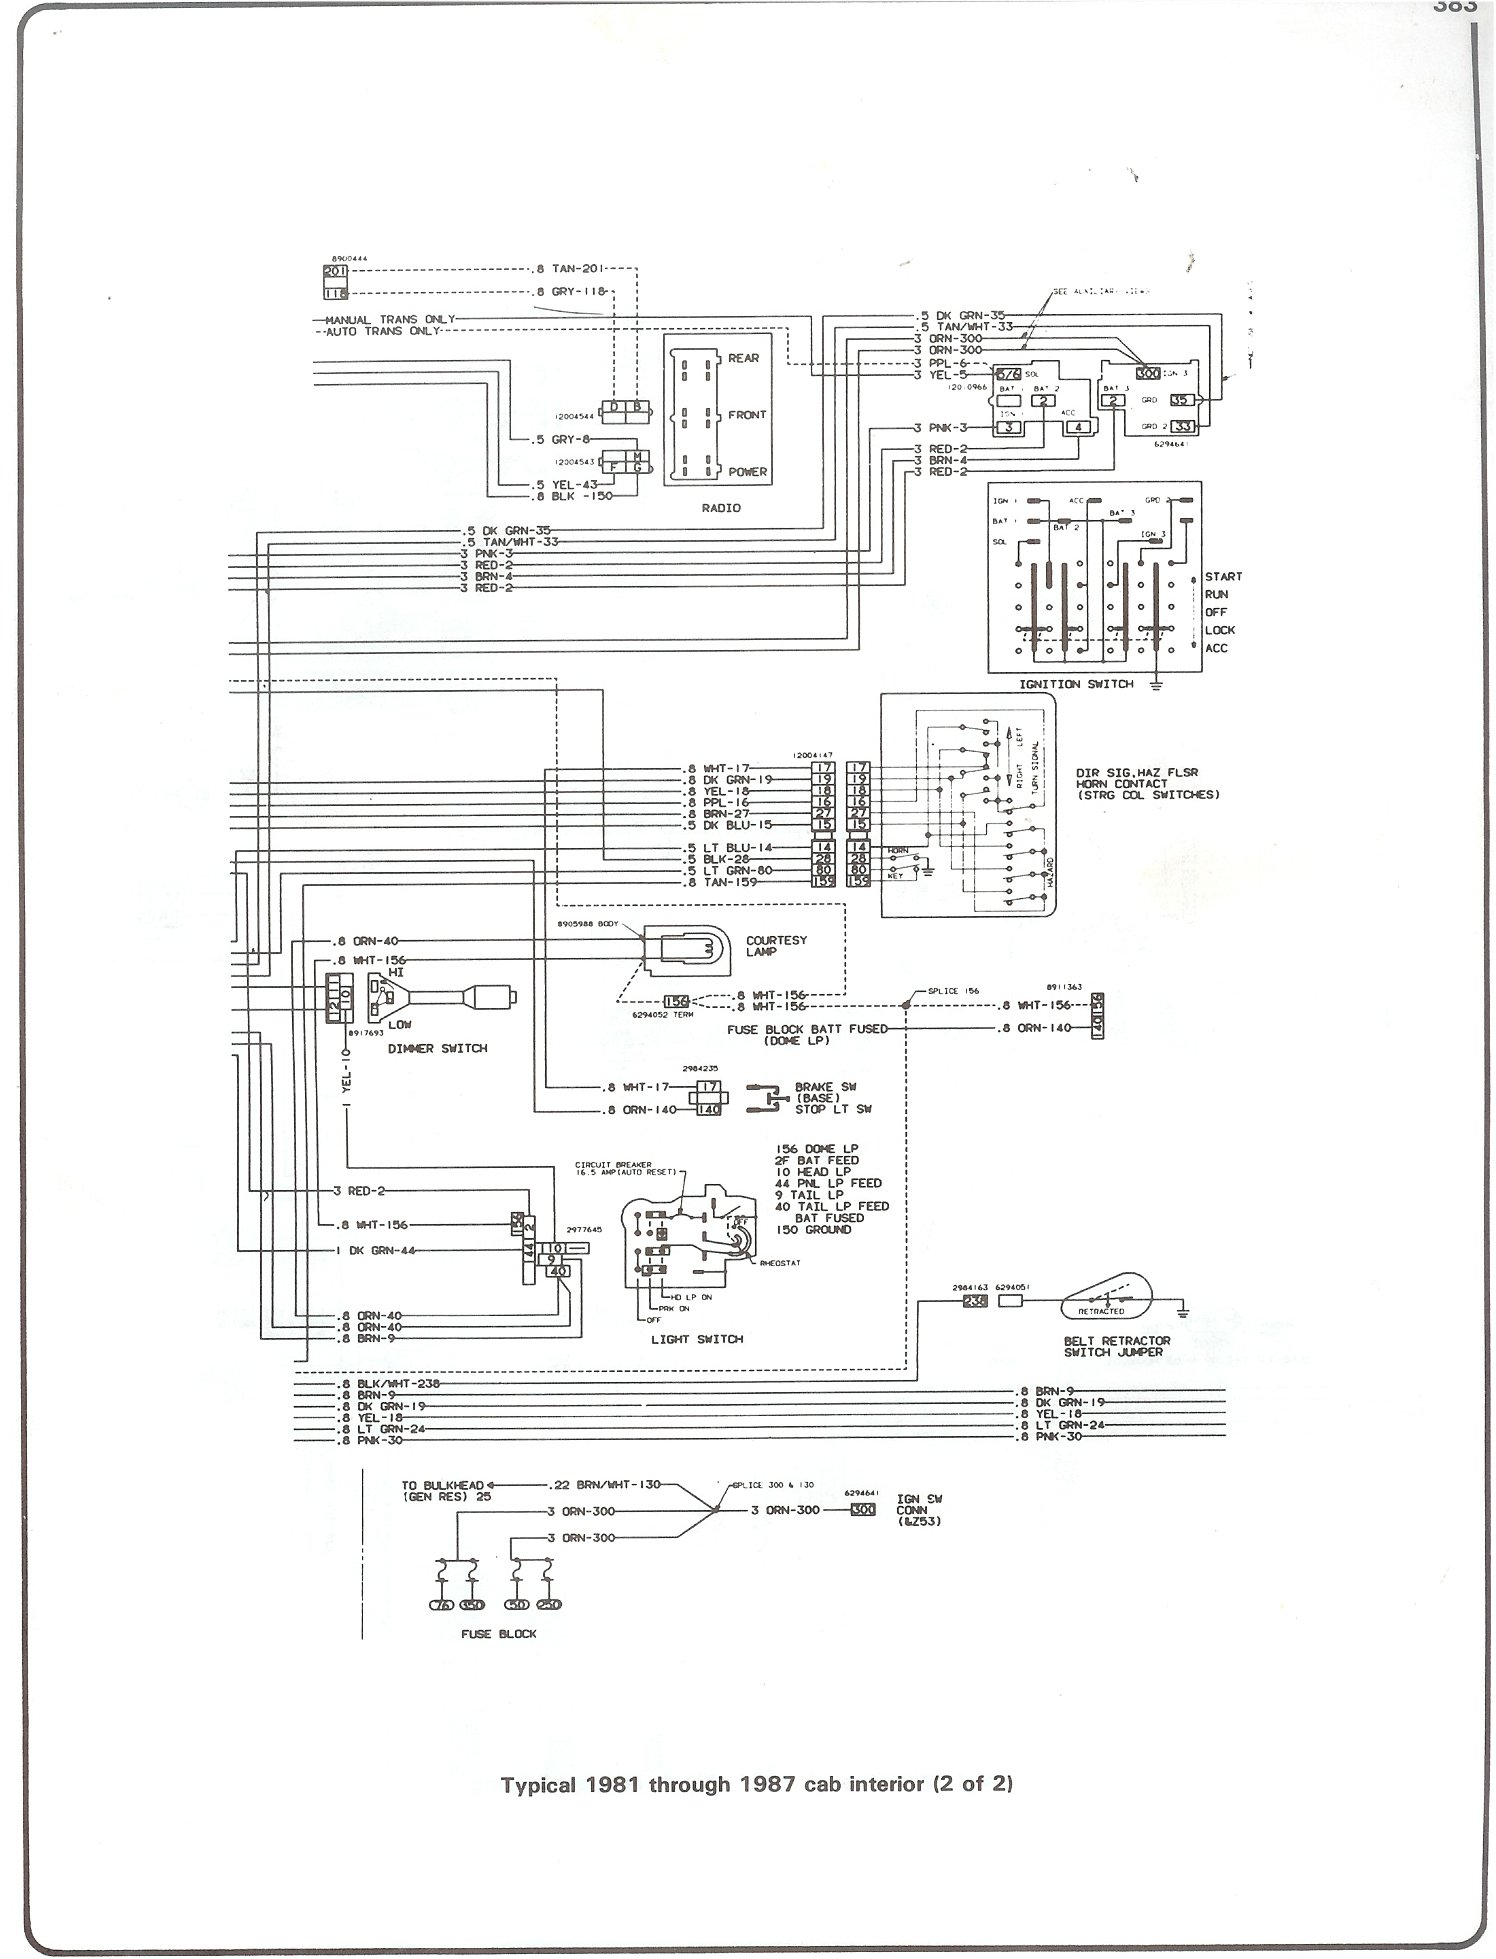 73 Ford Ranger Wiring Diagram Starting Know About Wiring Diagram \u2022  2000 Ford Ranger Parts Diagram 73 Ford Ranger Wiring Diagram